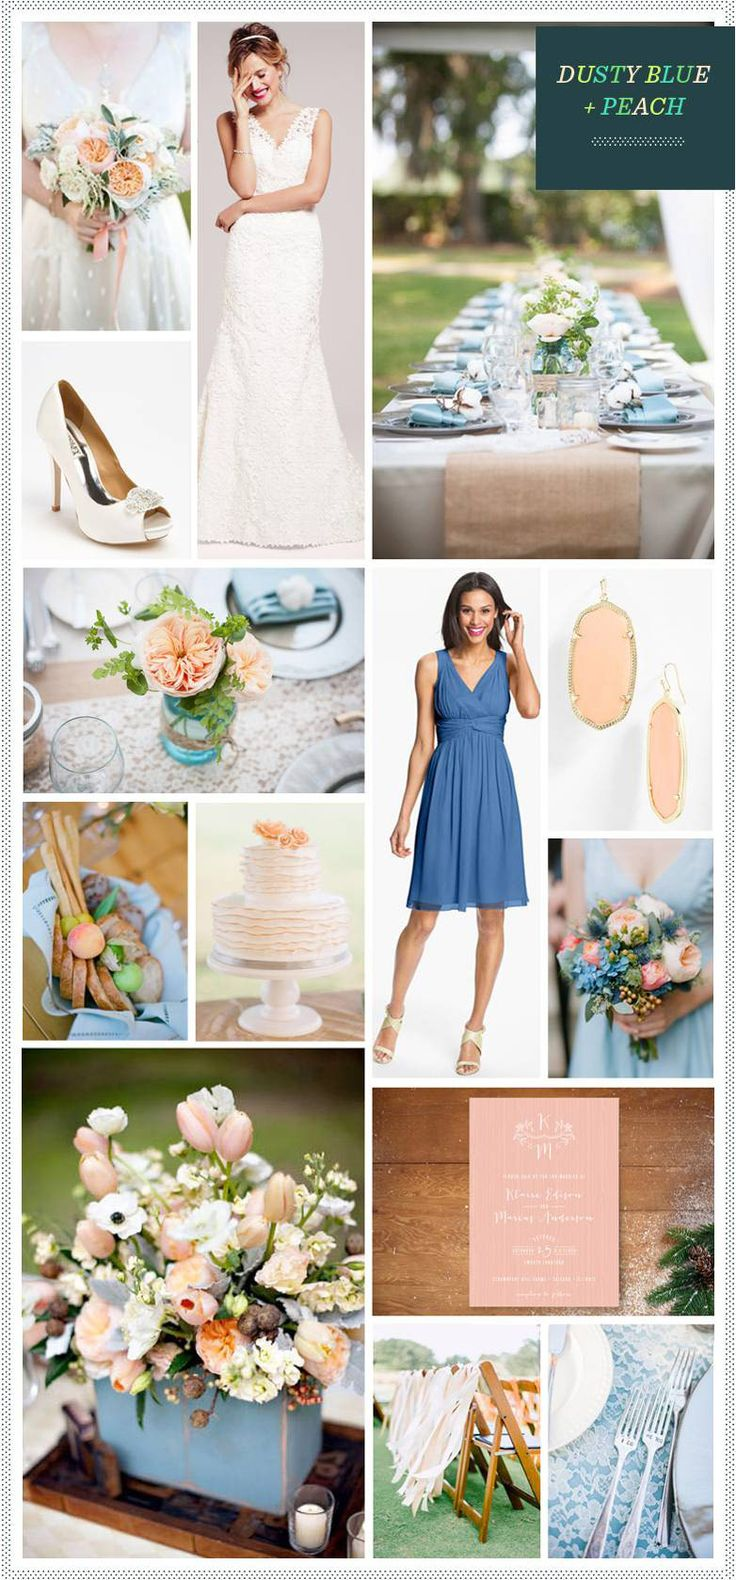 REVEL's inspiration board of peach and dusty blue.